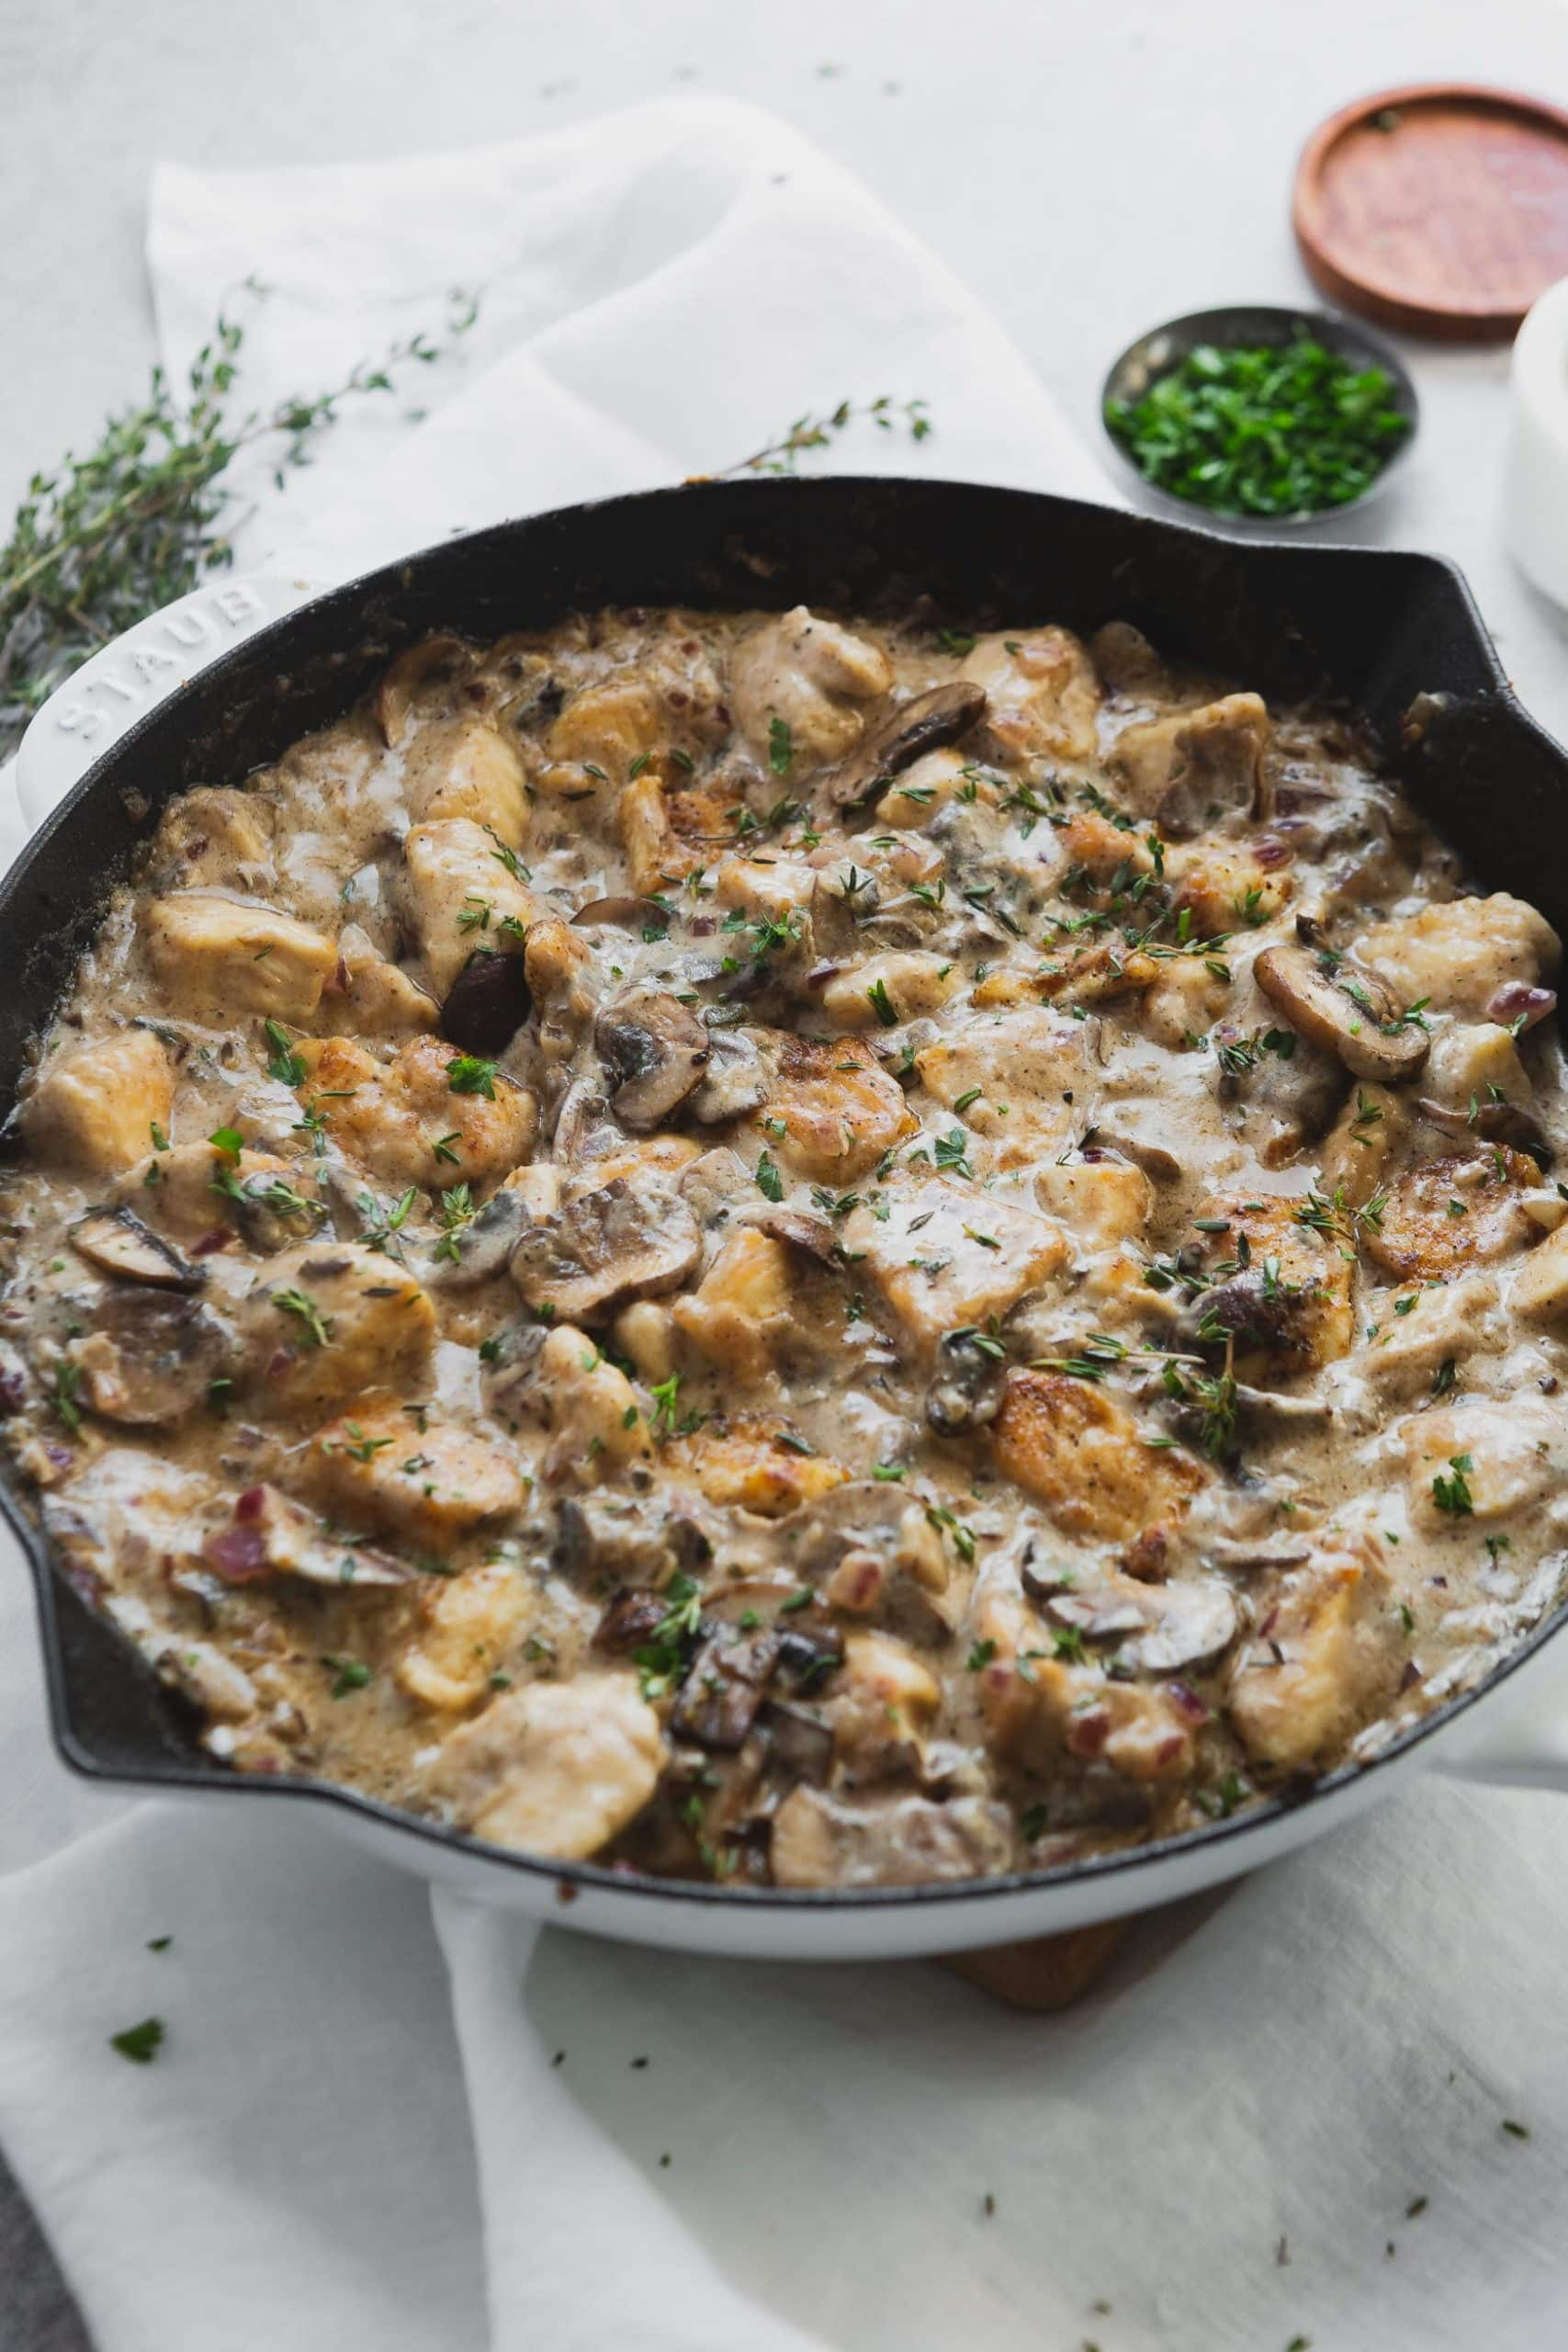 Chicken stroganoff in a Dutch Oven. The chunks of chicken are mixed in a creamy sauce with mushrooms and herbs.